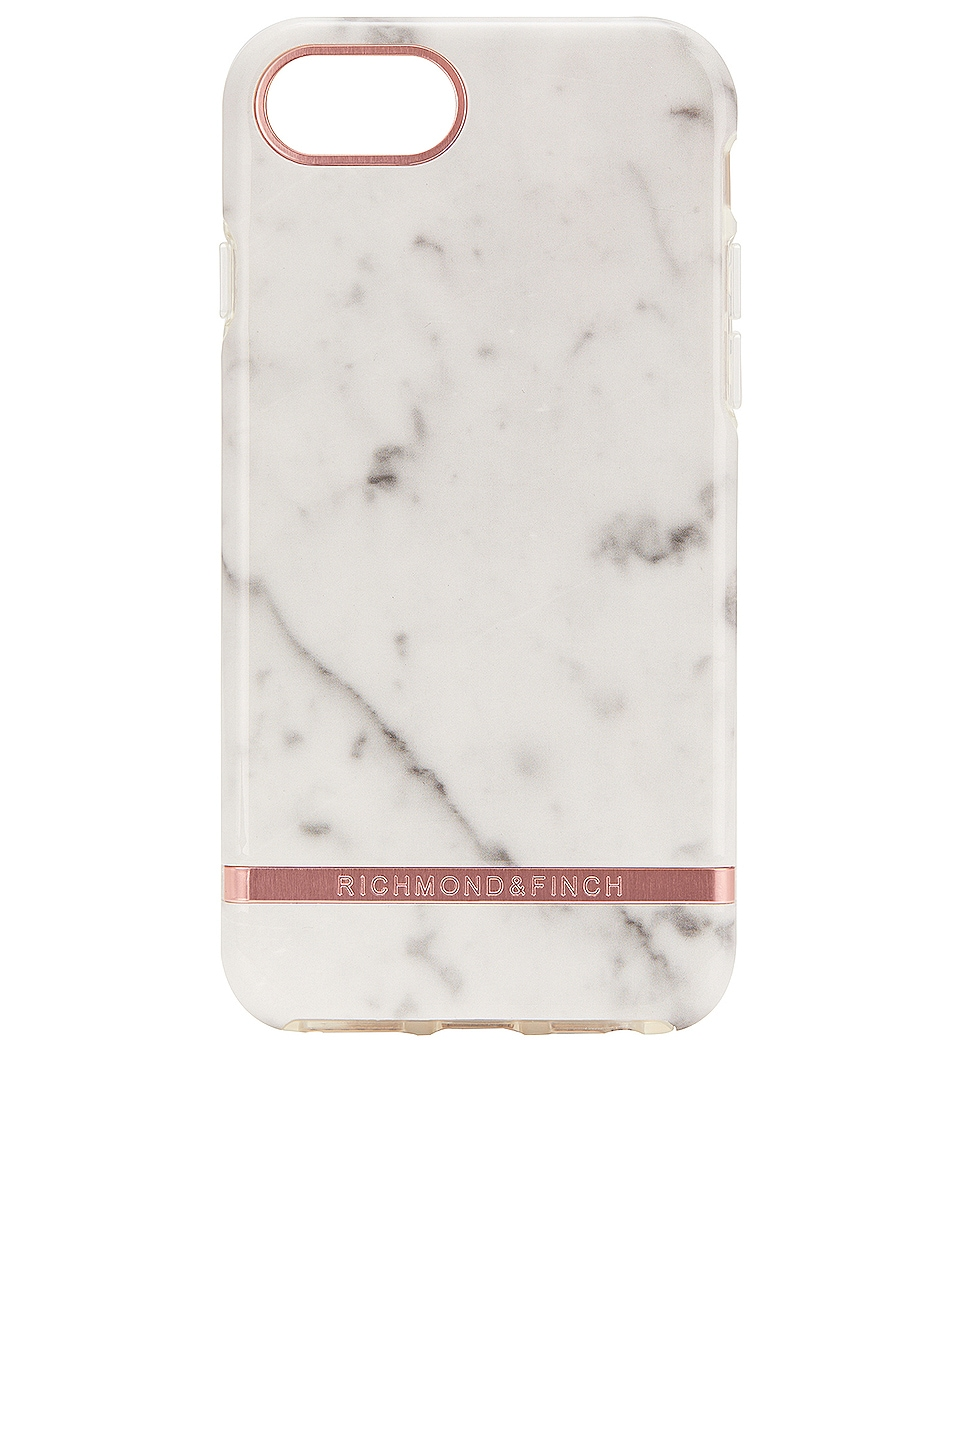 Richmond & Finch White Marble & Rose iPhone 6/7/8 Case in White Marble & Rose